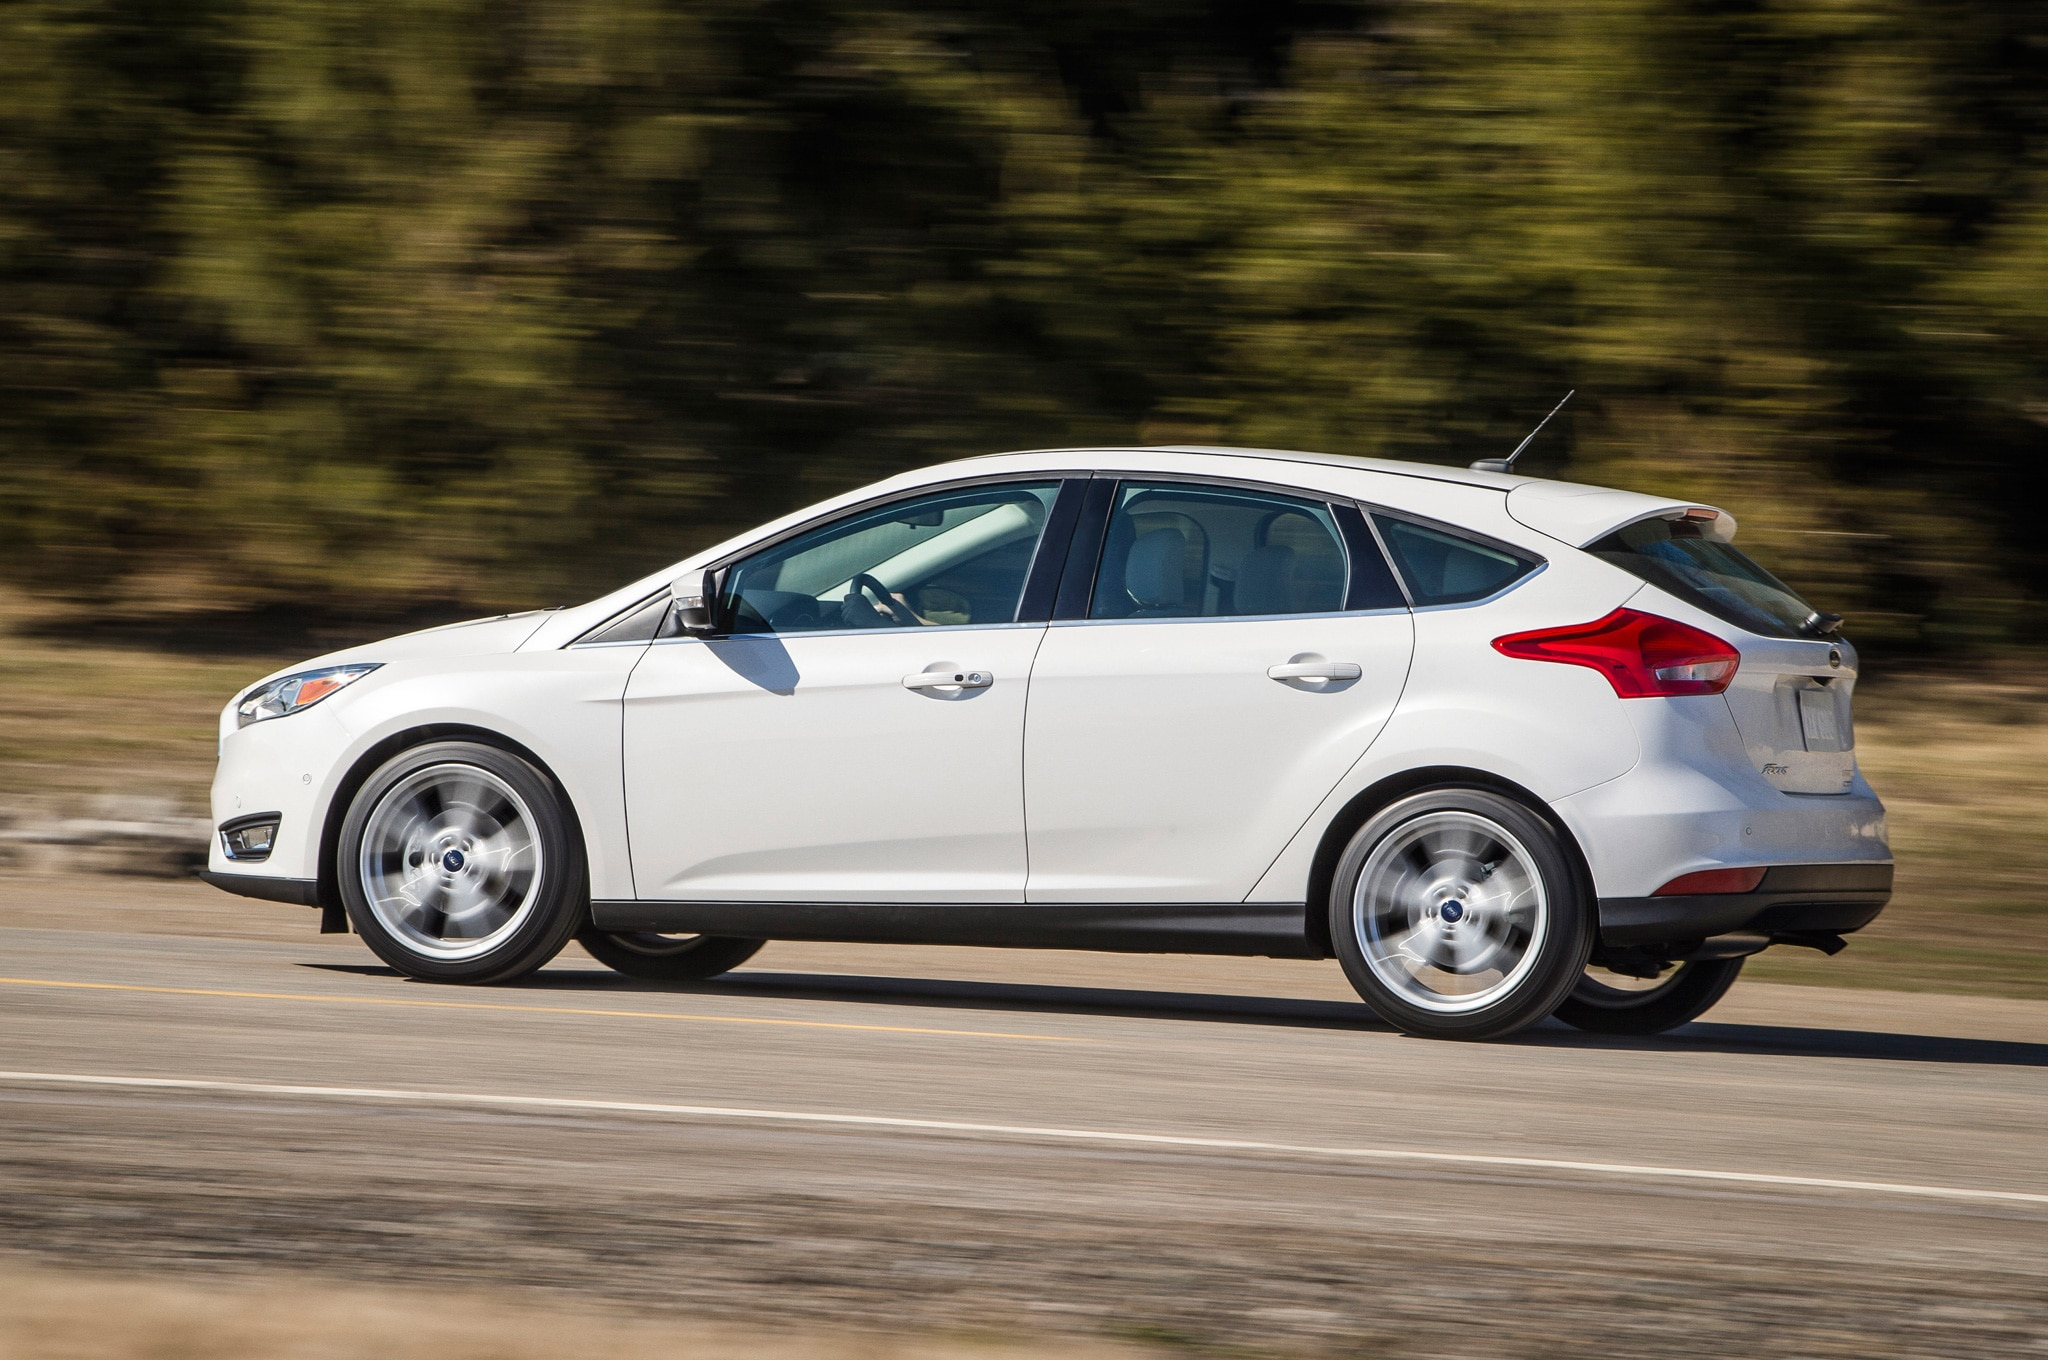 2015 ford focus hatchback side motion view on road